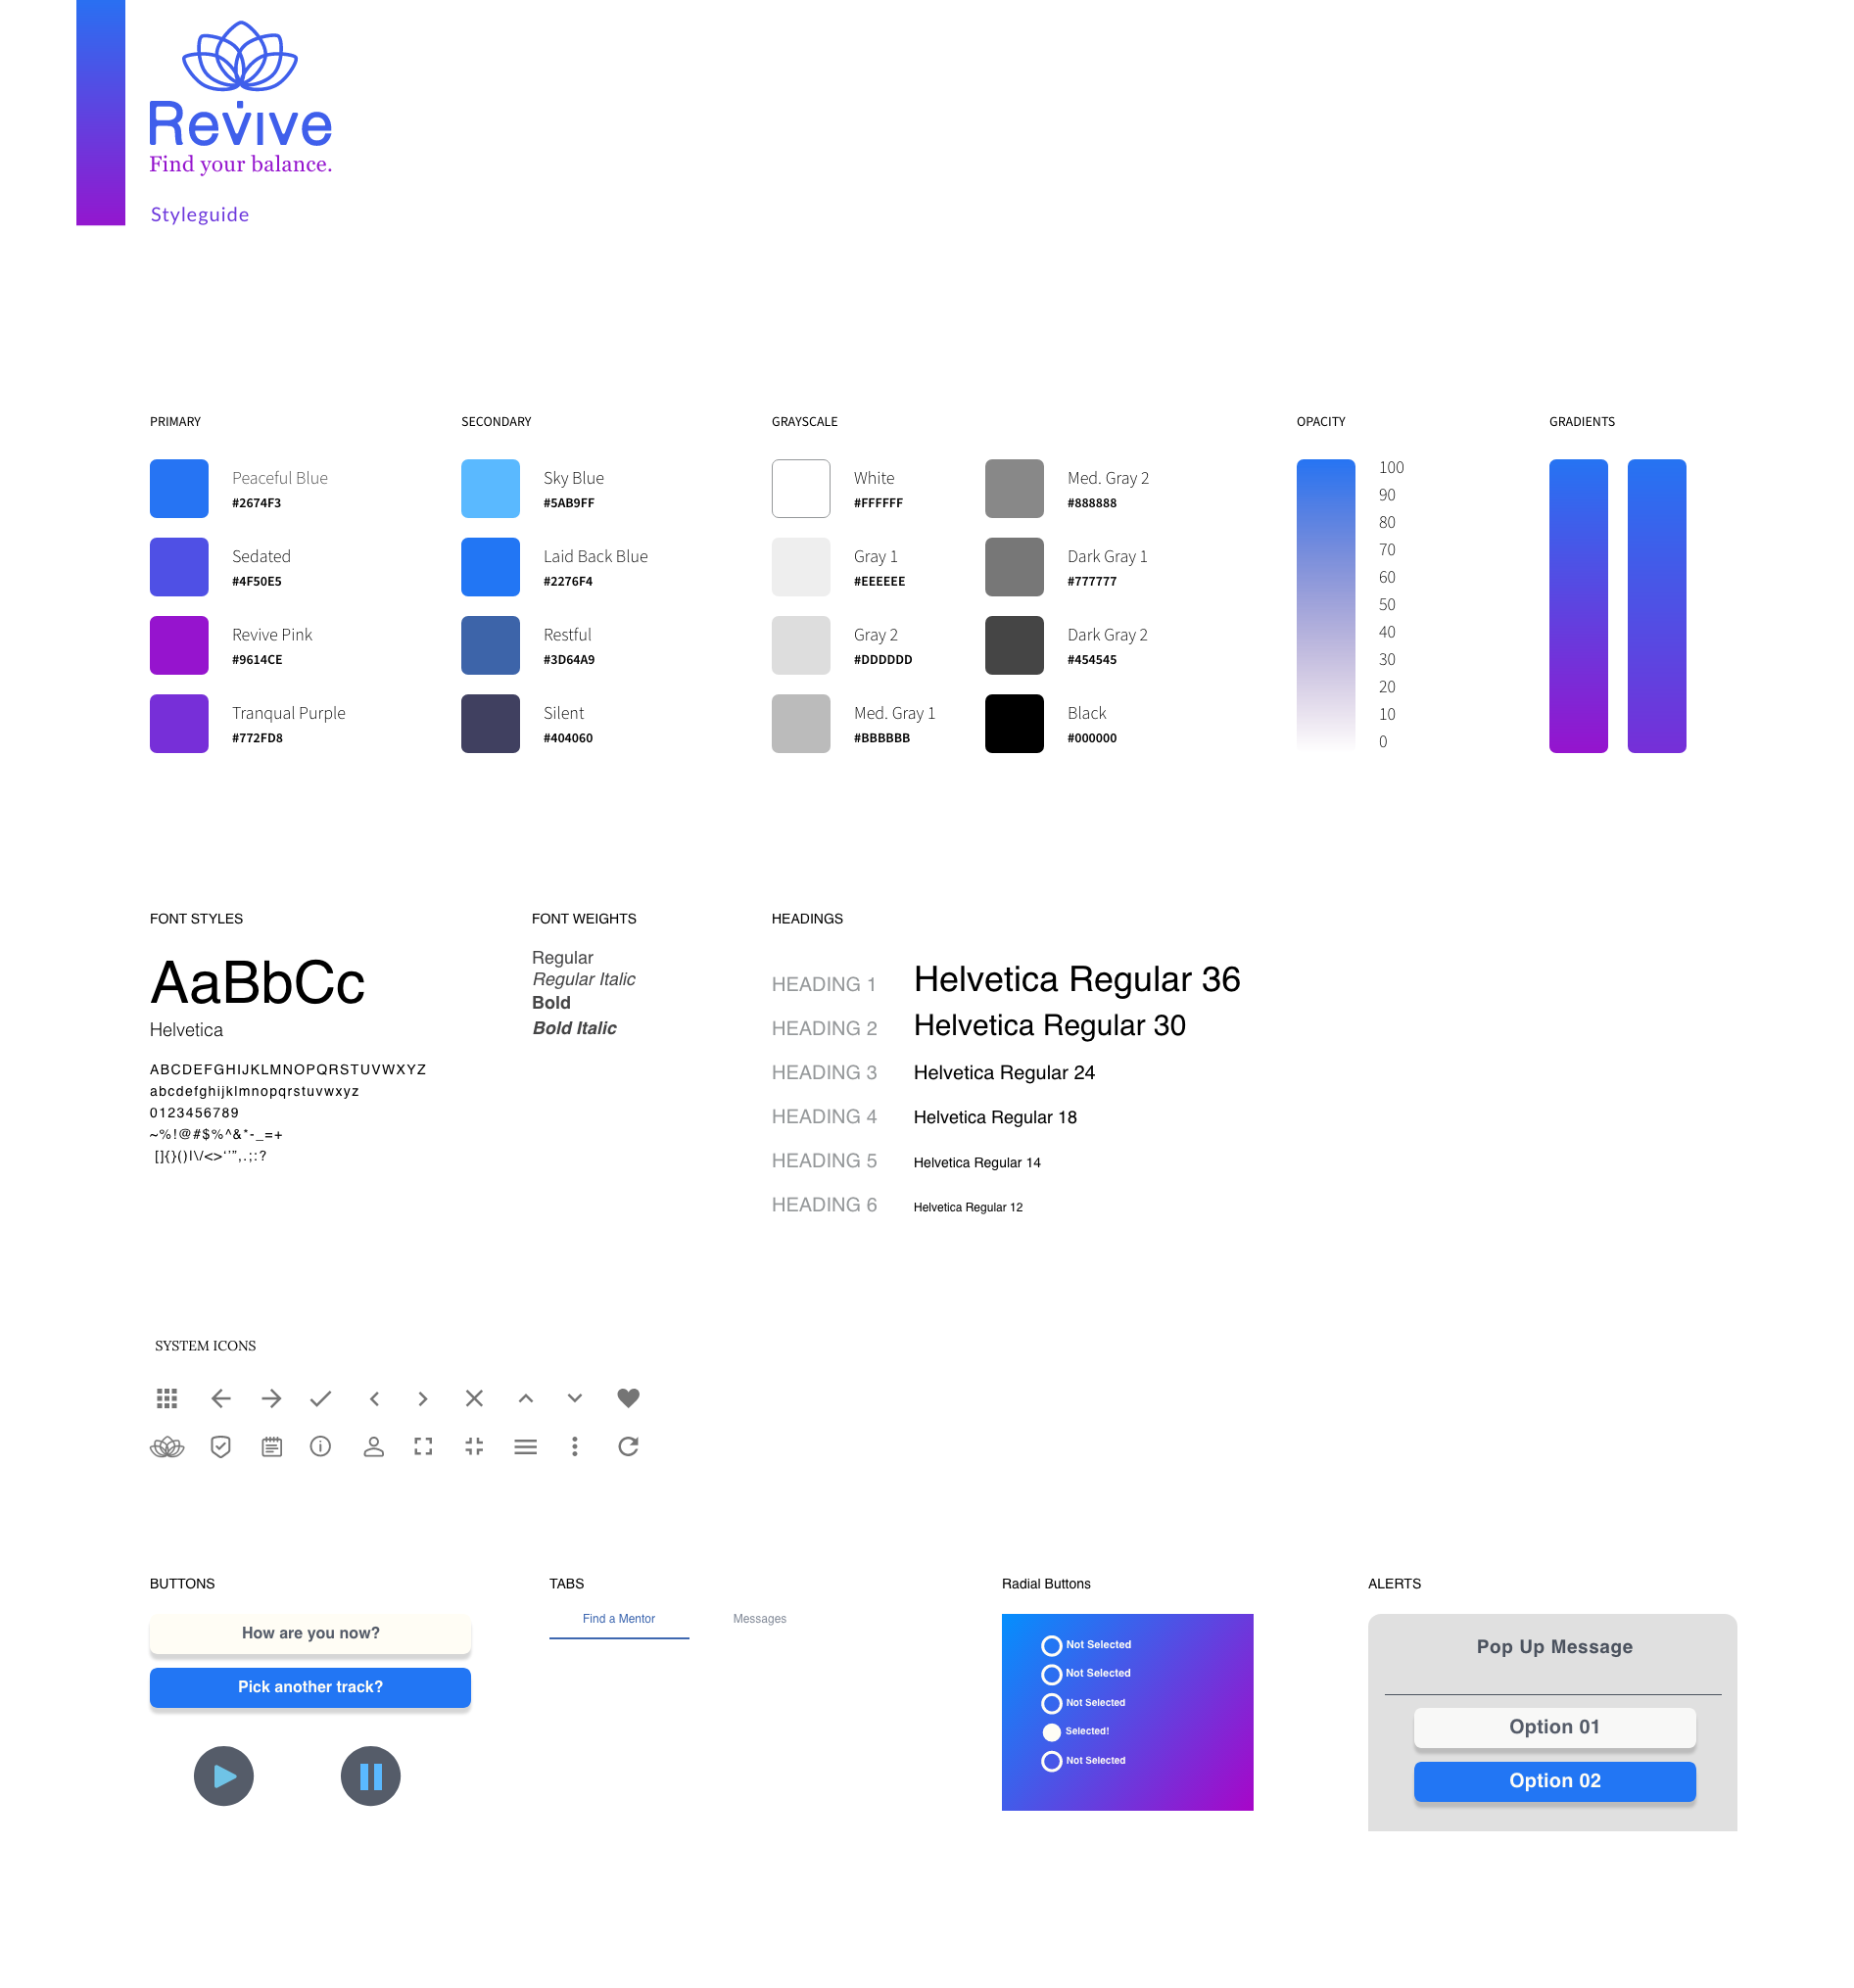 styleguide for revive a mindful app